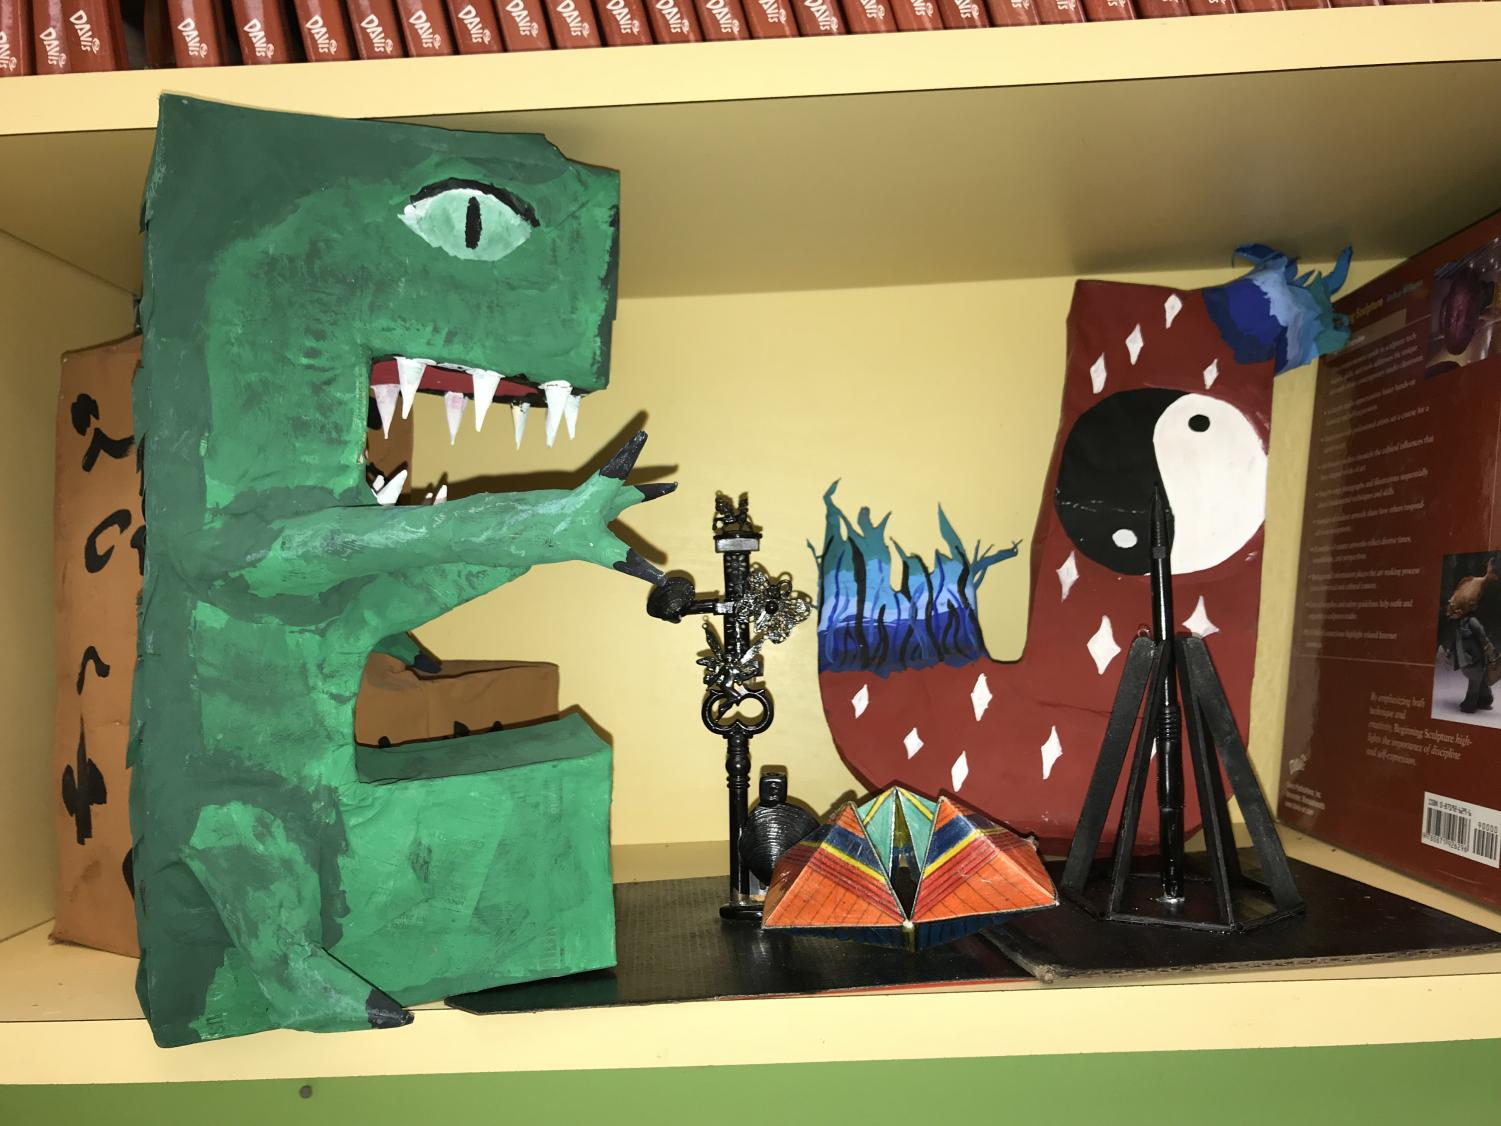 The+shelves+are+covered+by+giant+paper+mache+letters.+Each+letter+is+hand+painted+and+shaped+by+students.+Completed+art+projects+are+always+shown+off+within+and+outside+of+the+art+room.+